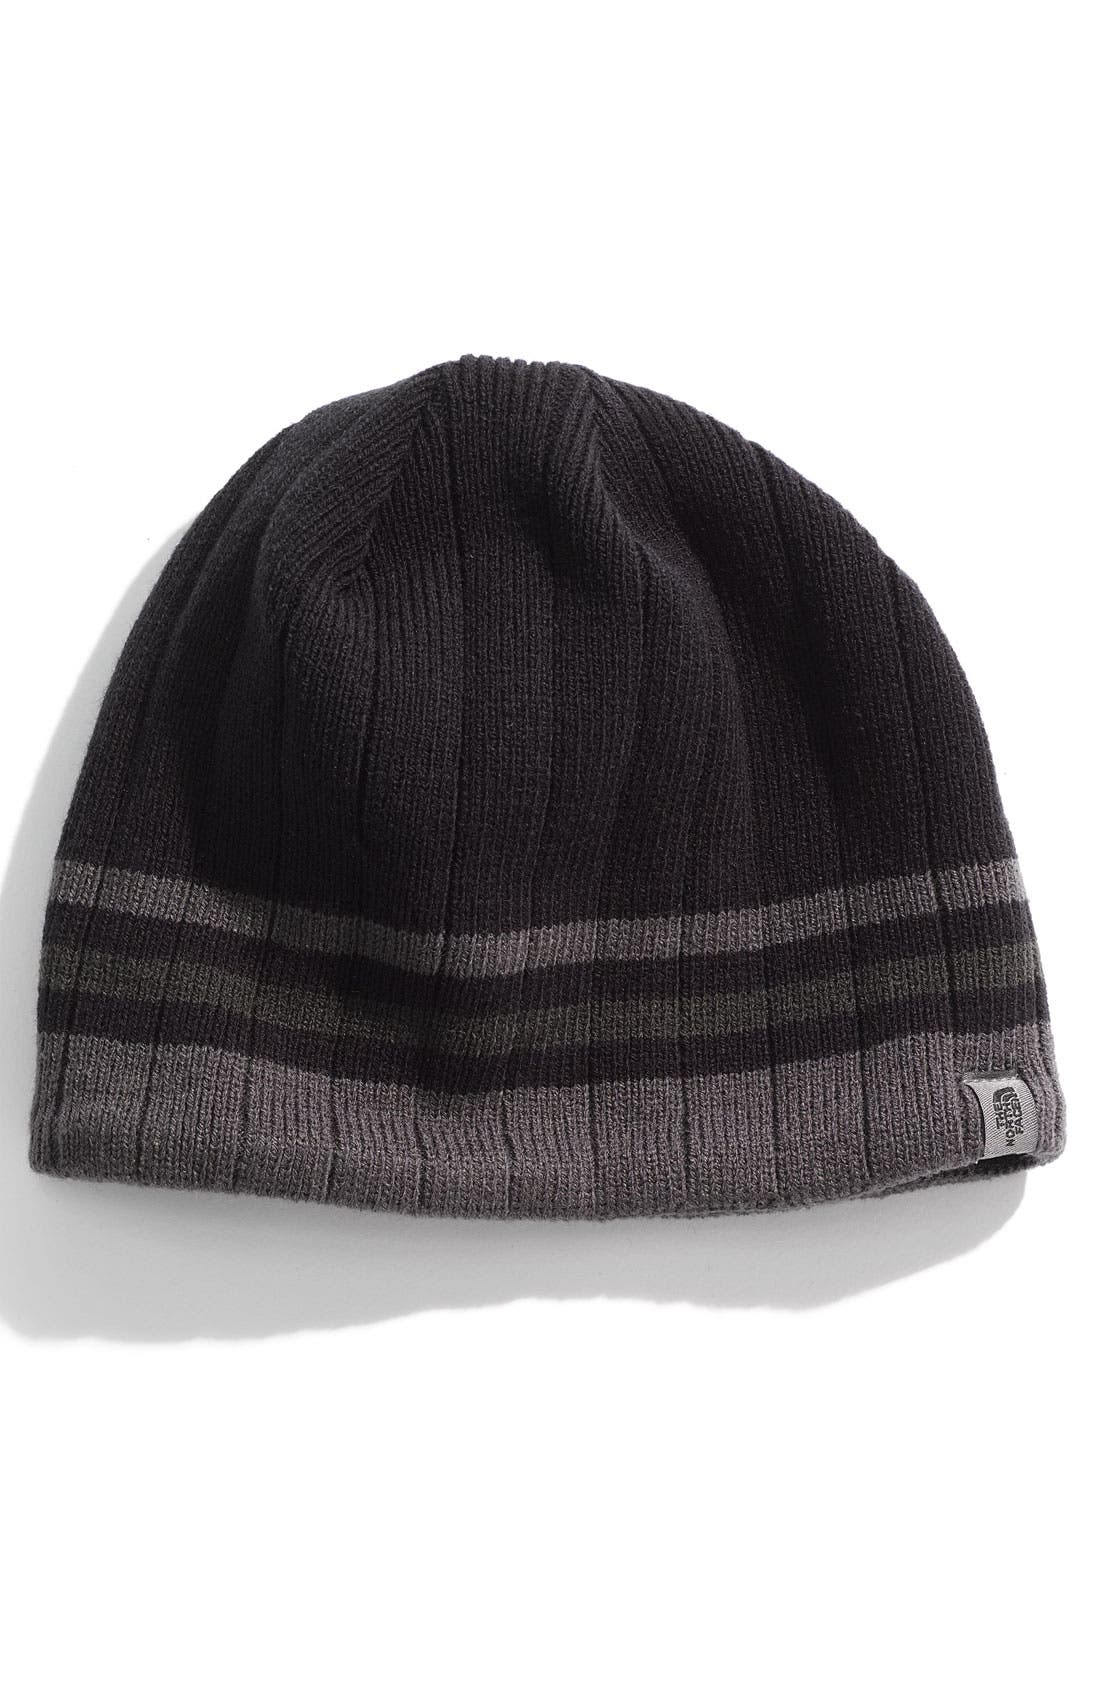 Main Image - The North Face 'Blues II' Beanie